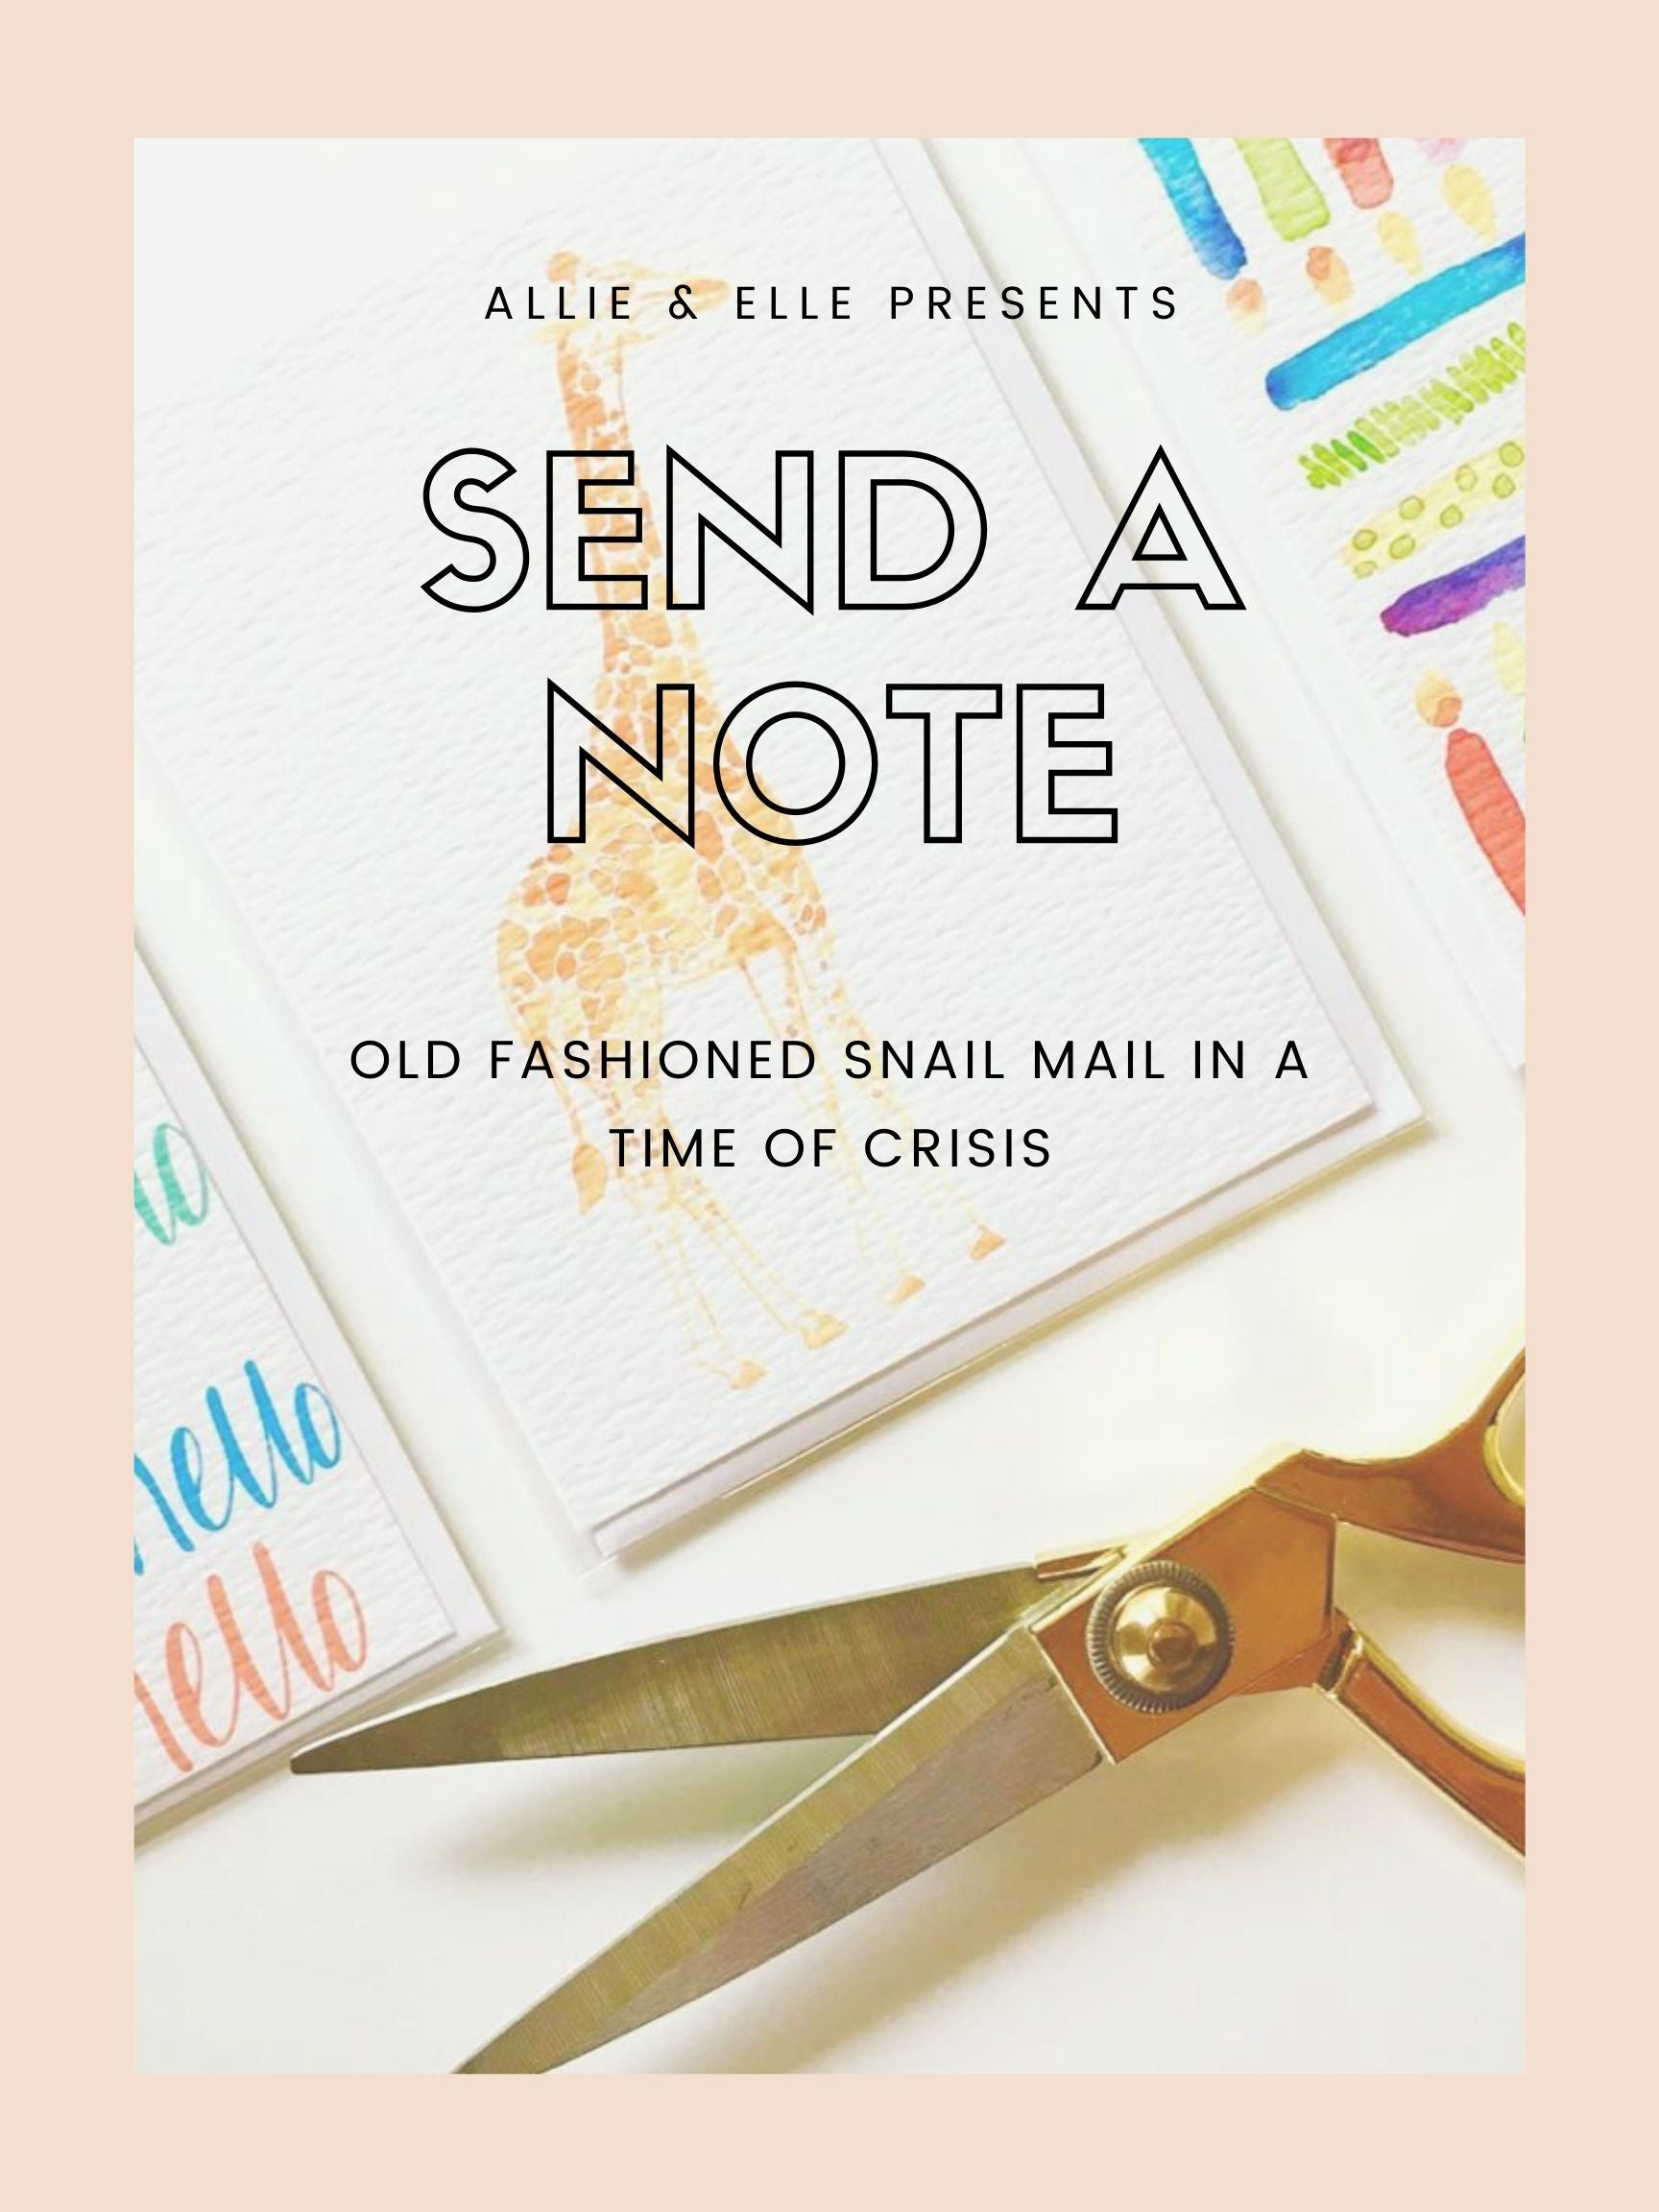 Old fashioned snail mail in a time of crisis